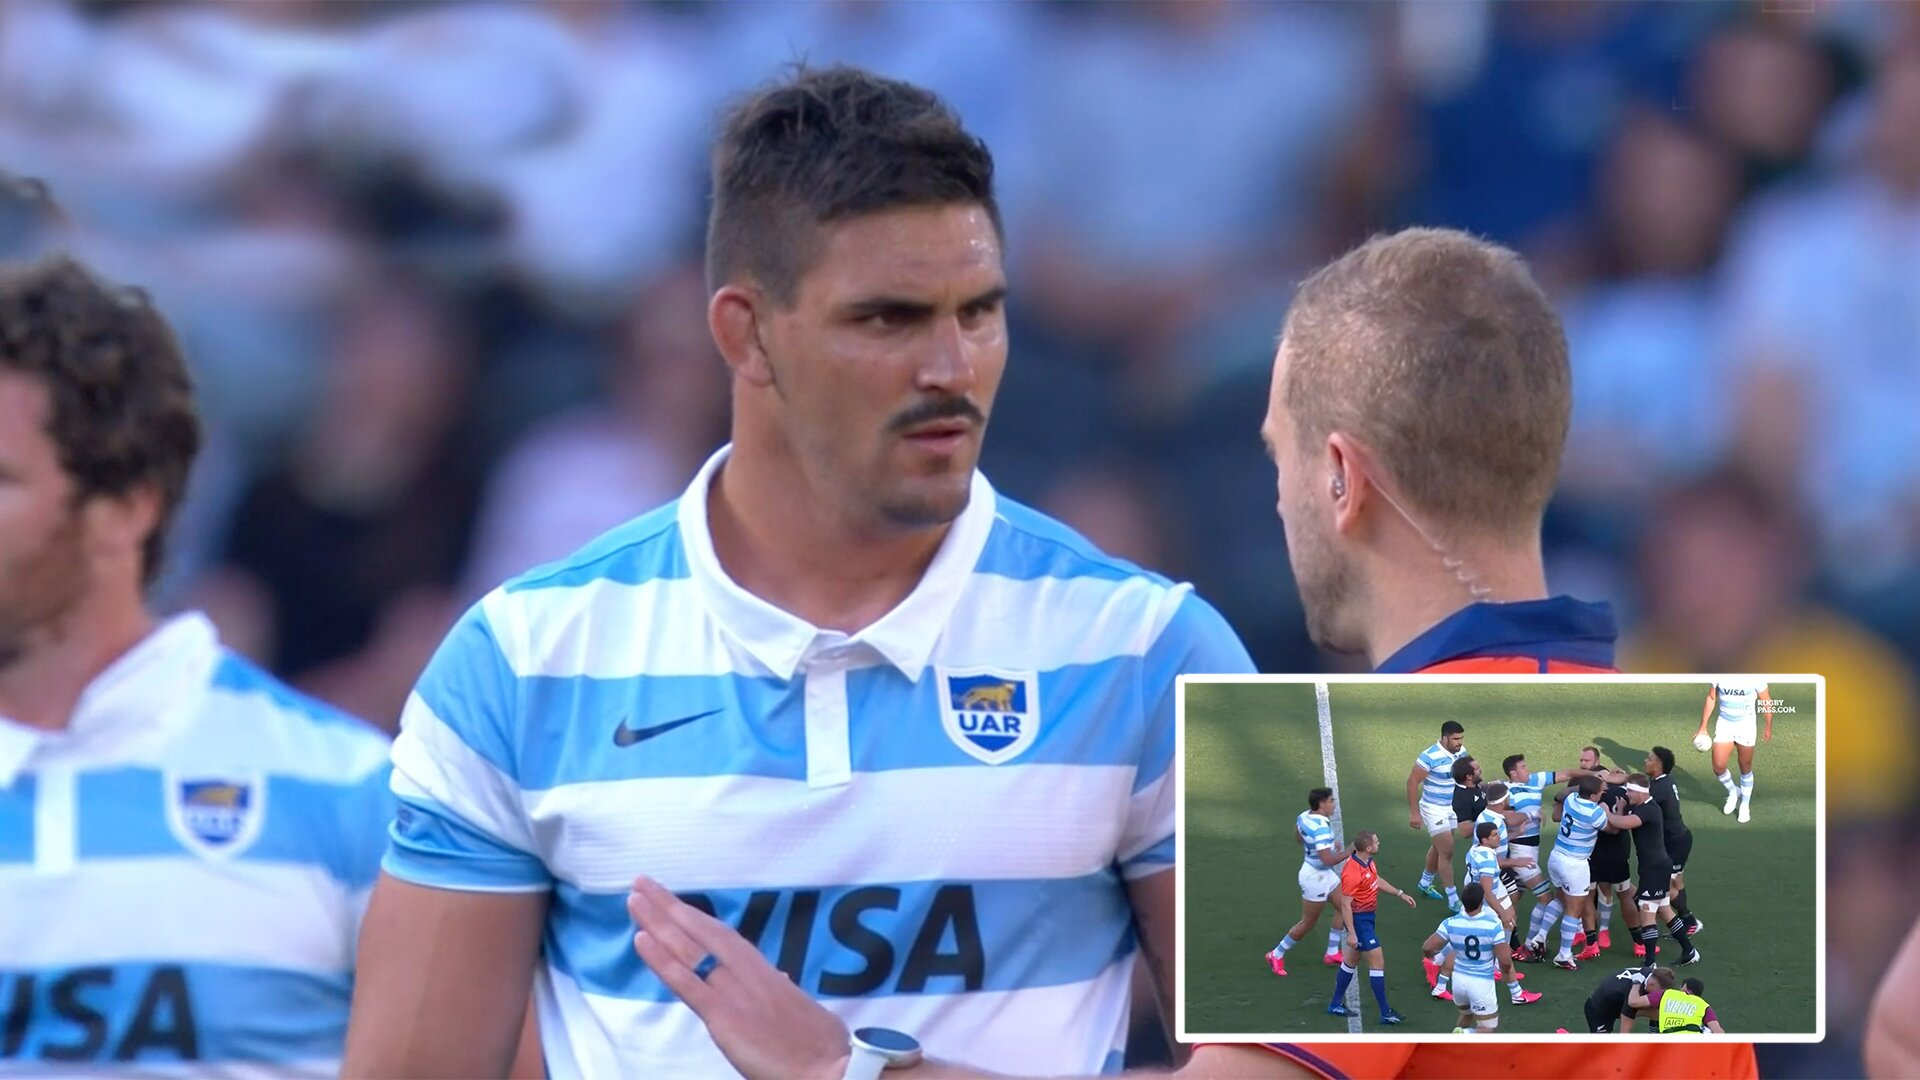 'They're kicking my guys. They show no respect.' Pumas captain is new national hero after intense opening exchanges in today's shock upset